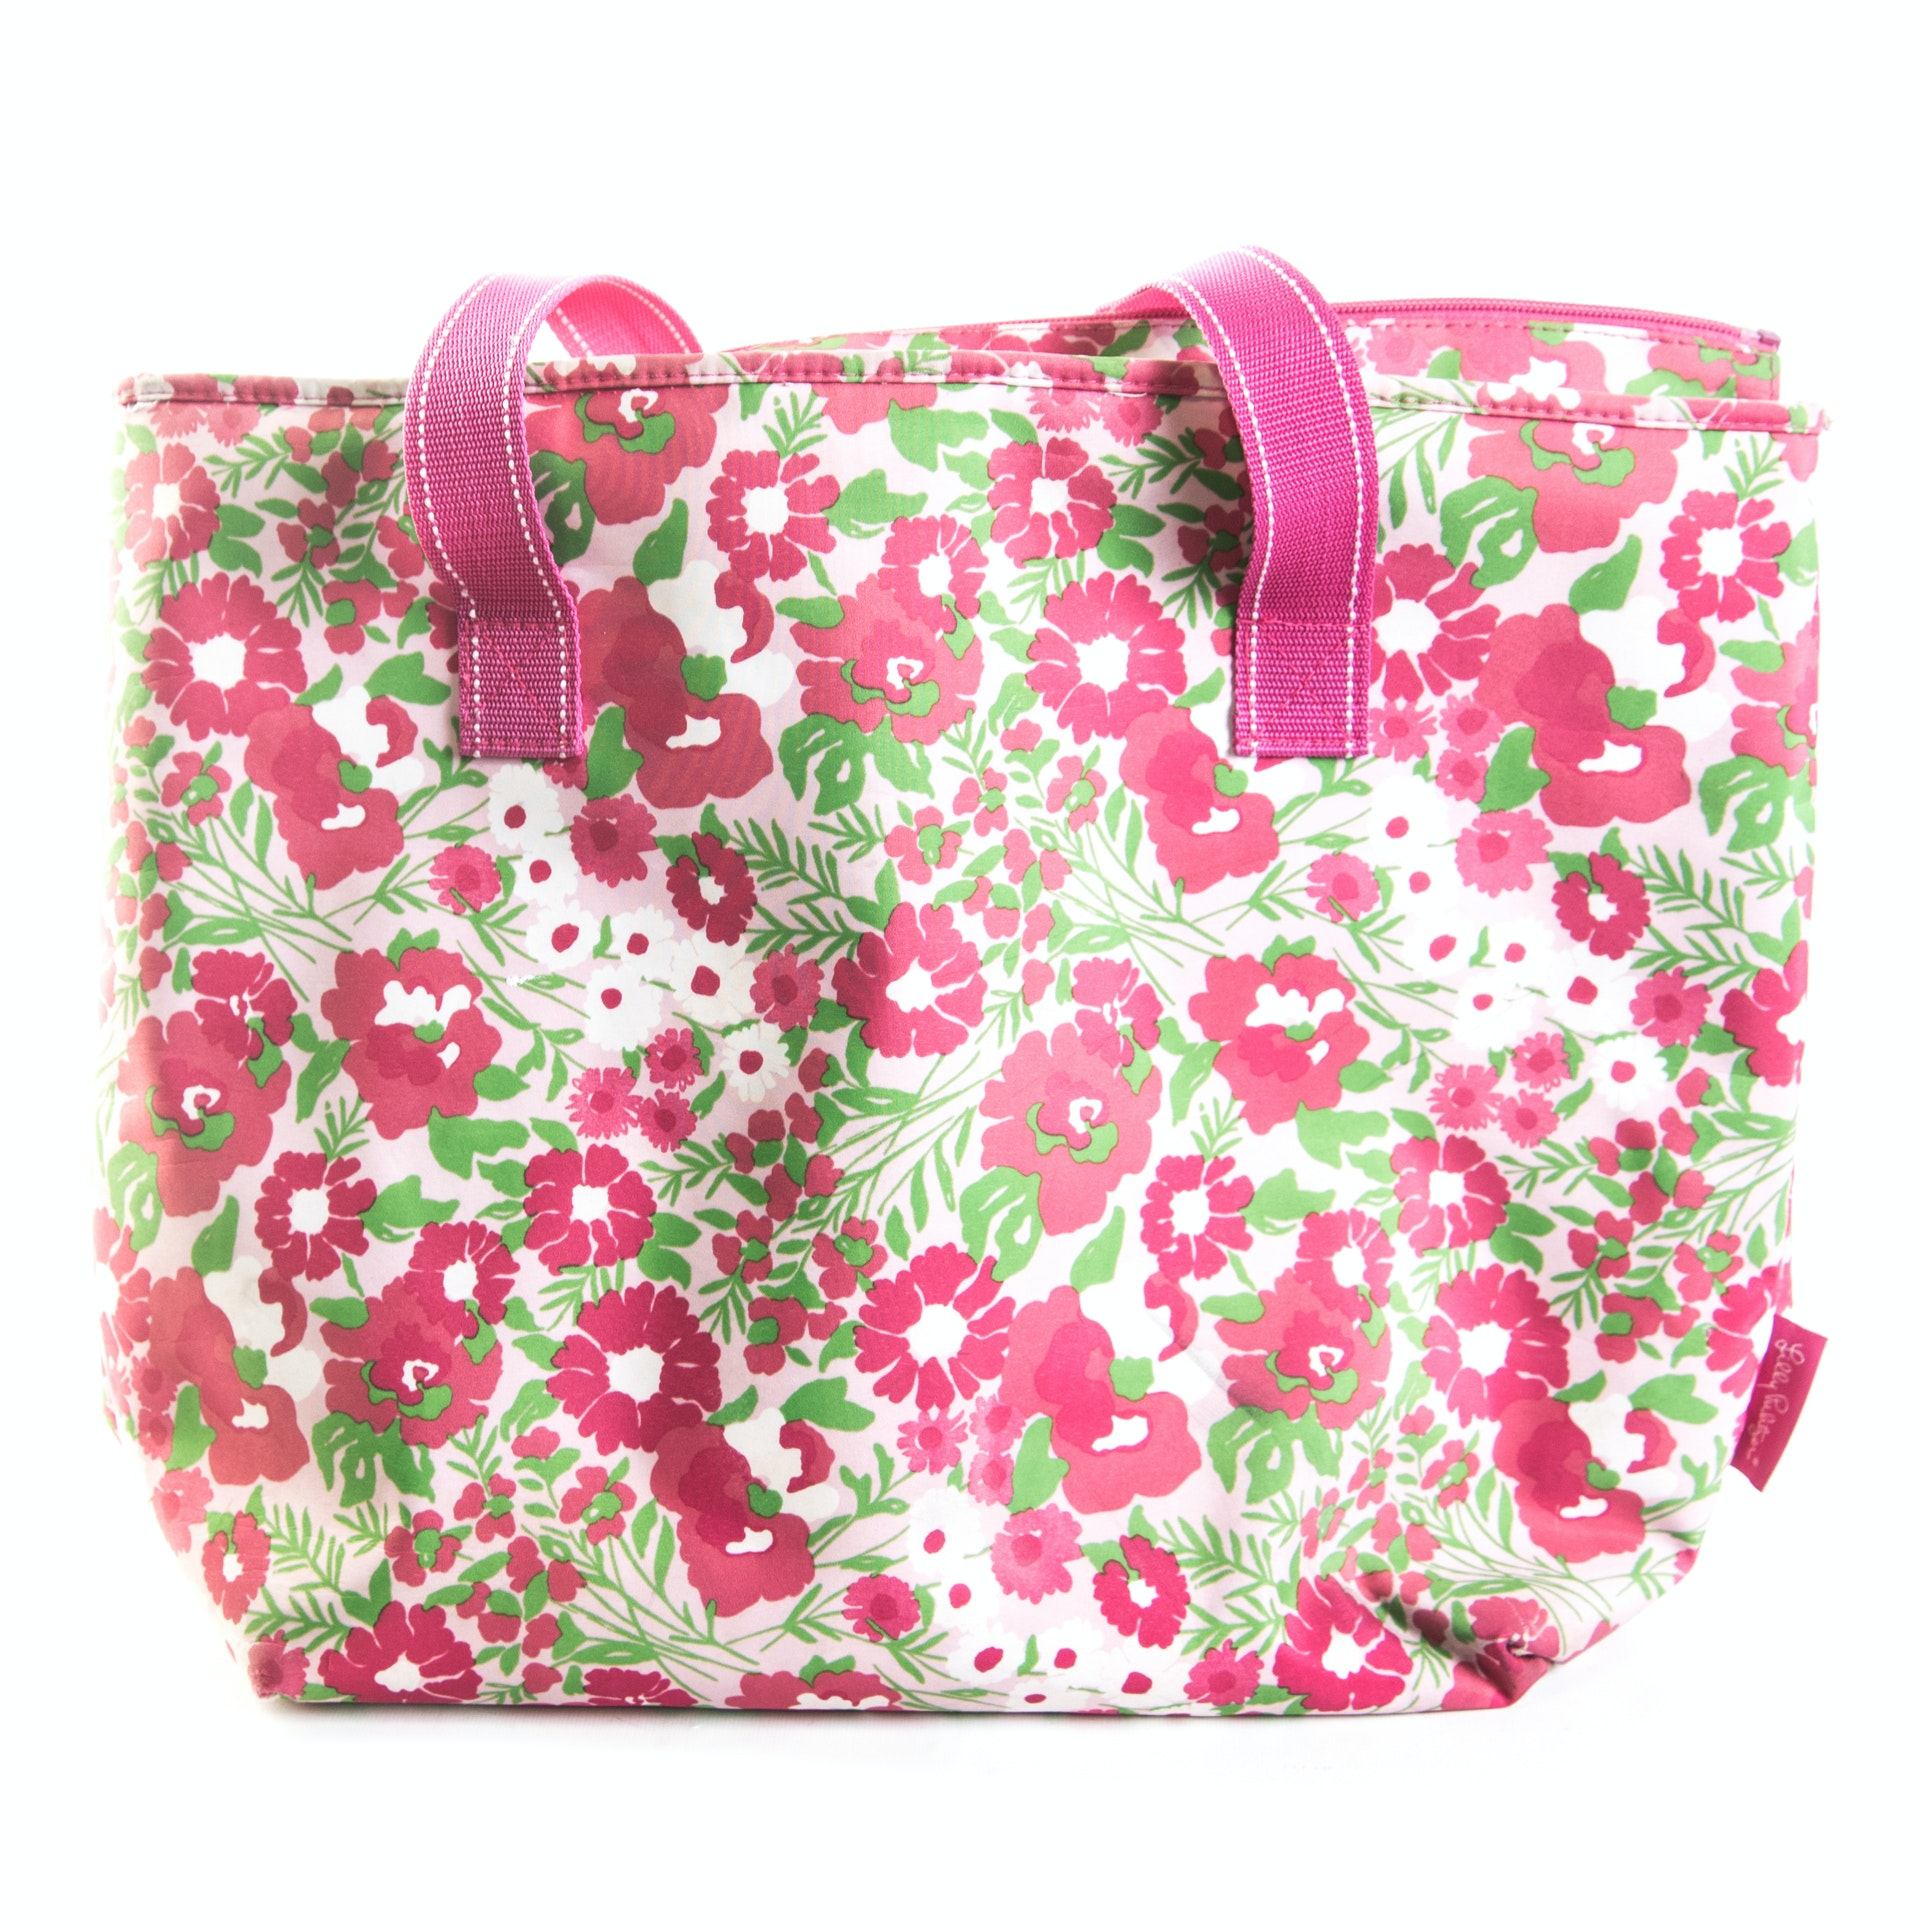 Lilly Pulitzer Beach Tote